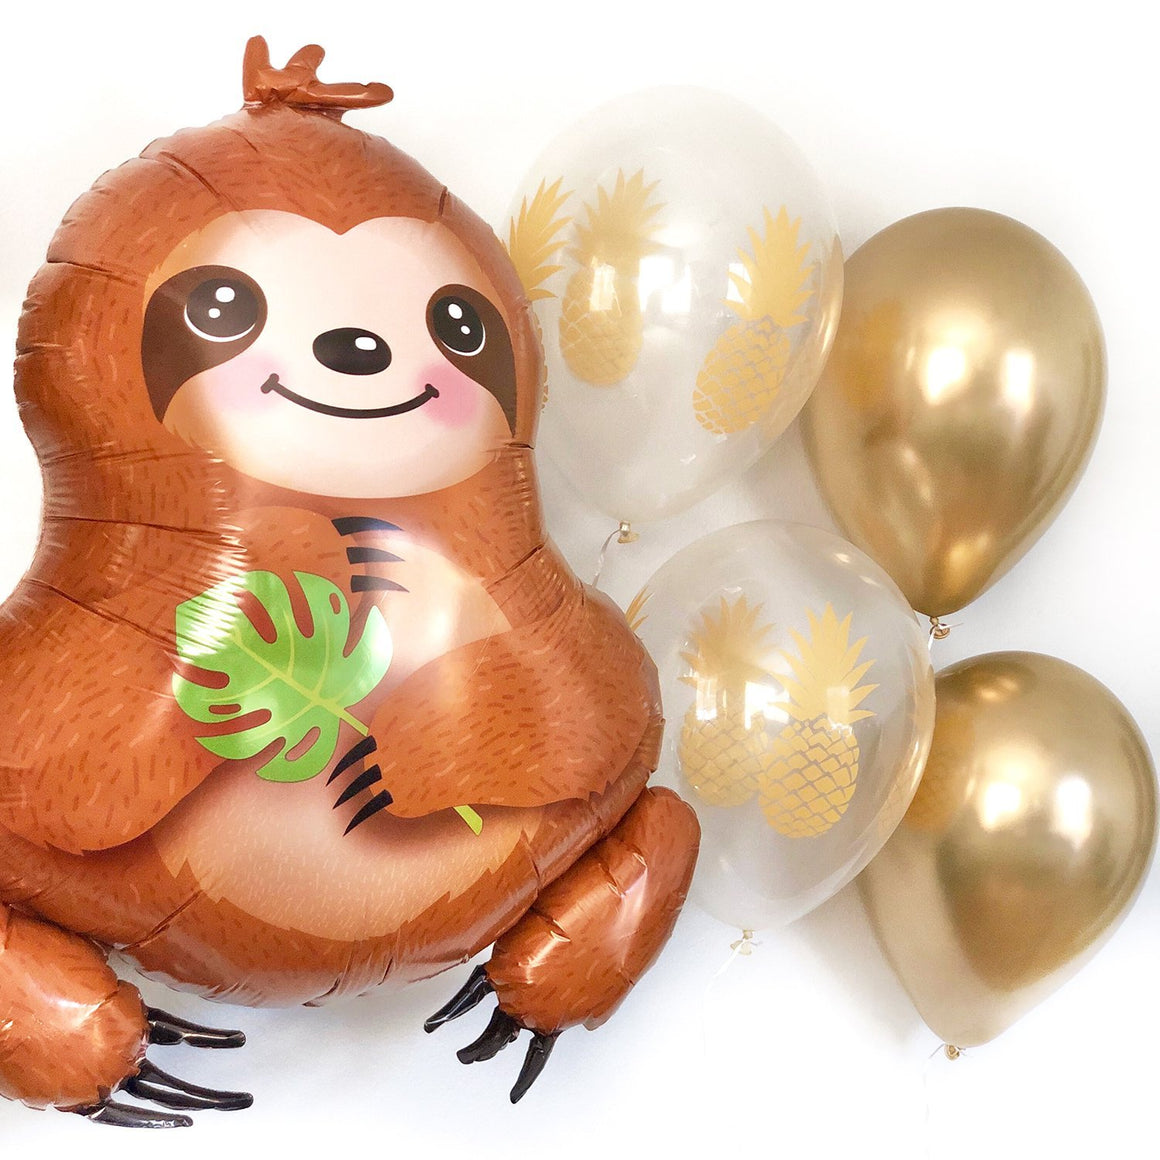 Baby Sloth and Golden Pineapple Balloon Set - Pretty Collected